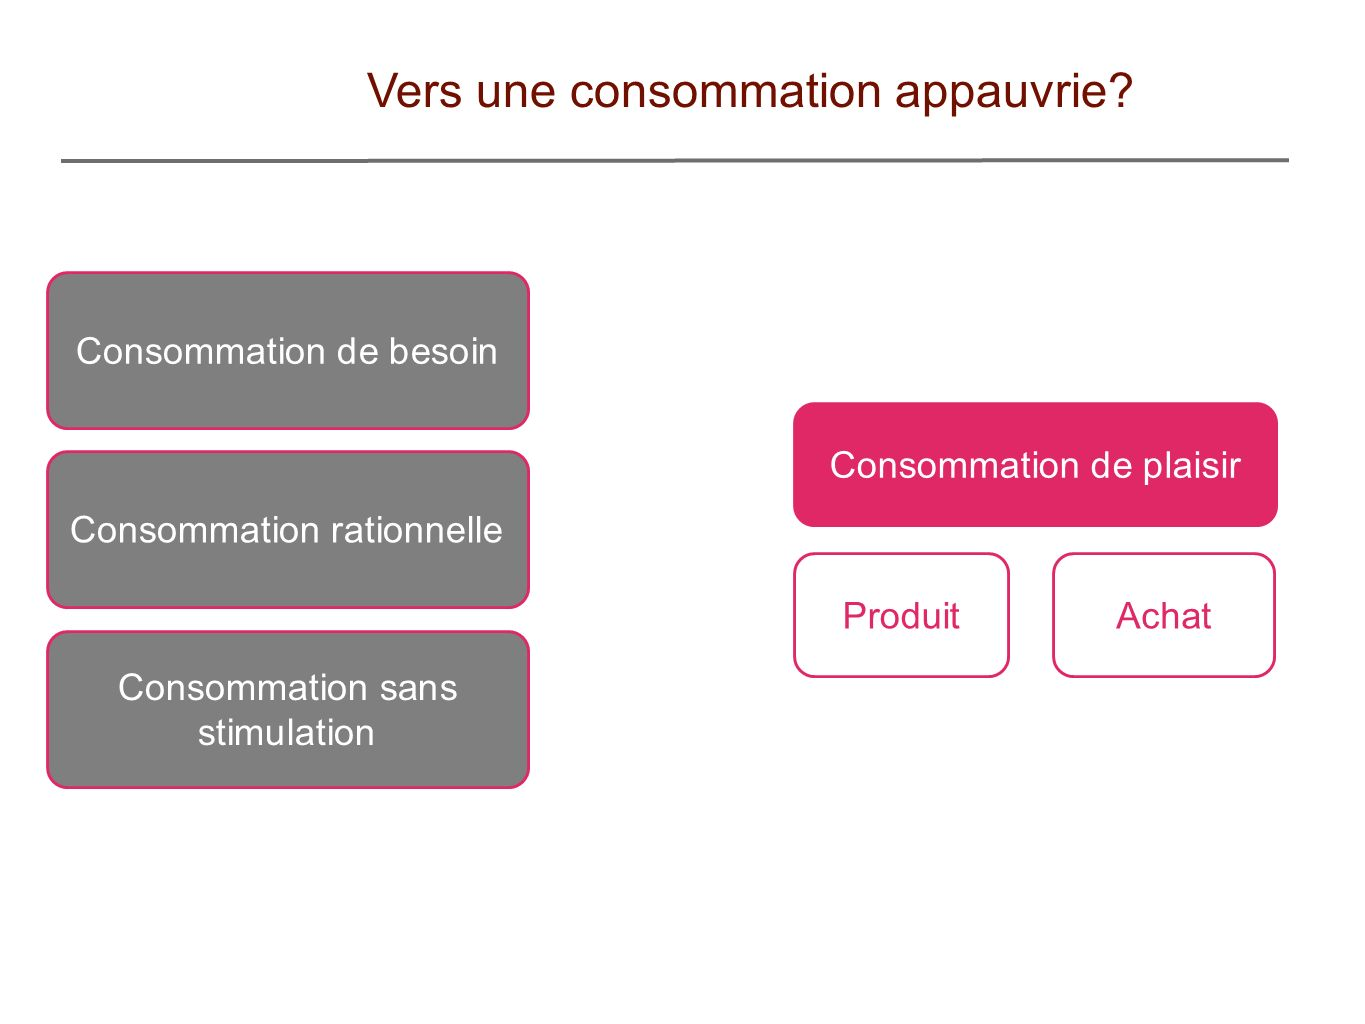 Vers une consommation appauvrie